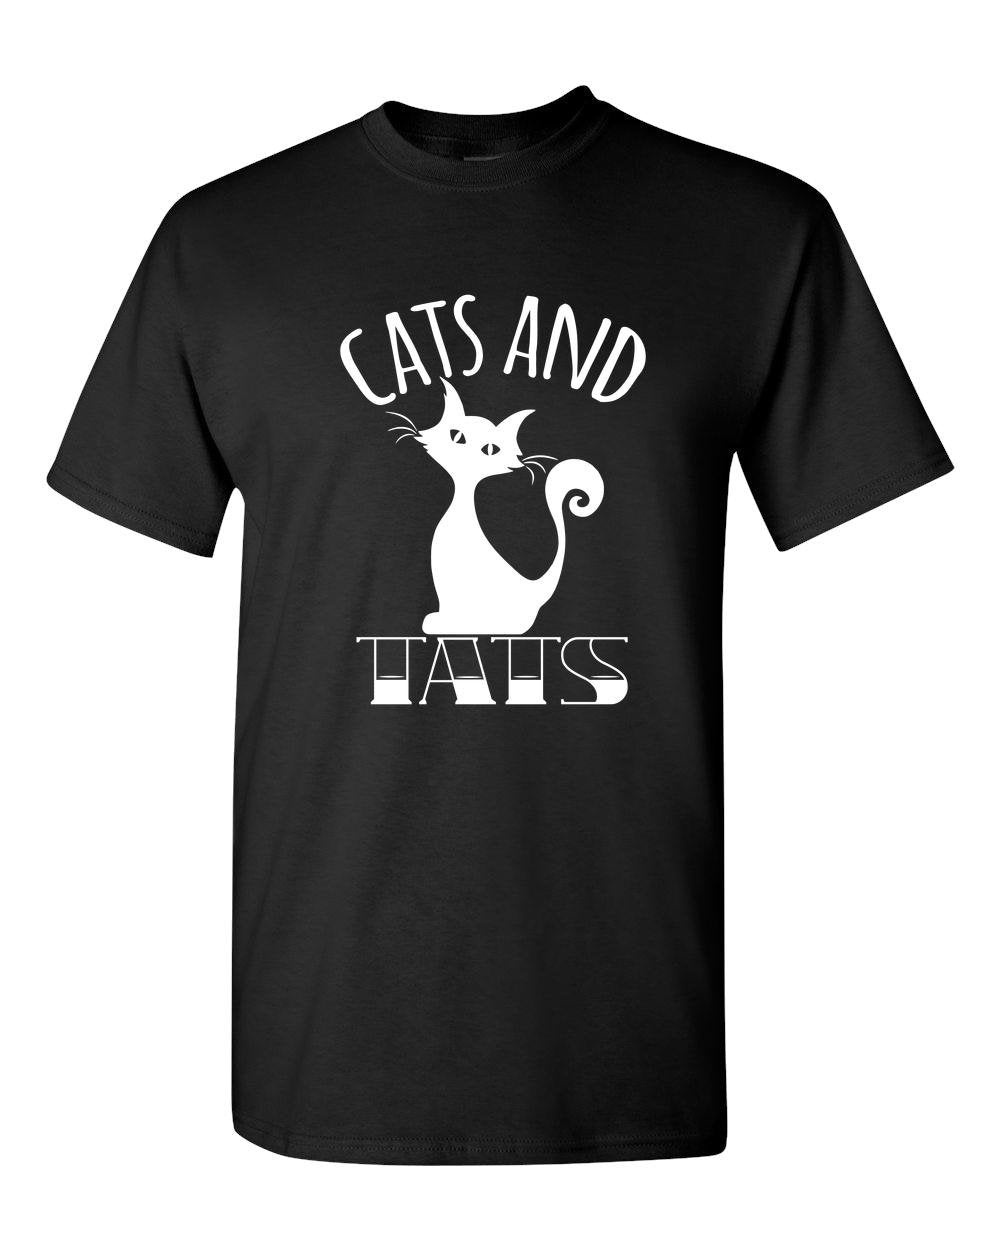 Cats And Tats Tattoo Adult Unisex T-Shirt Cat and Tattoo Lover